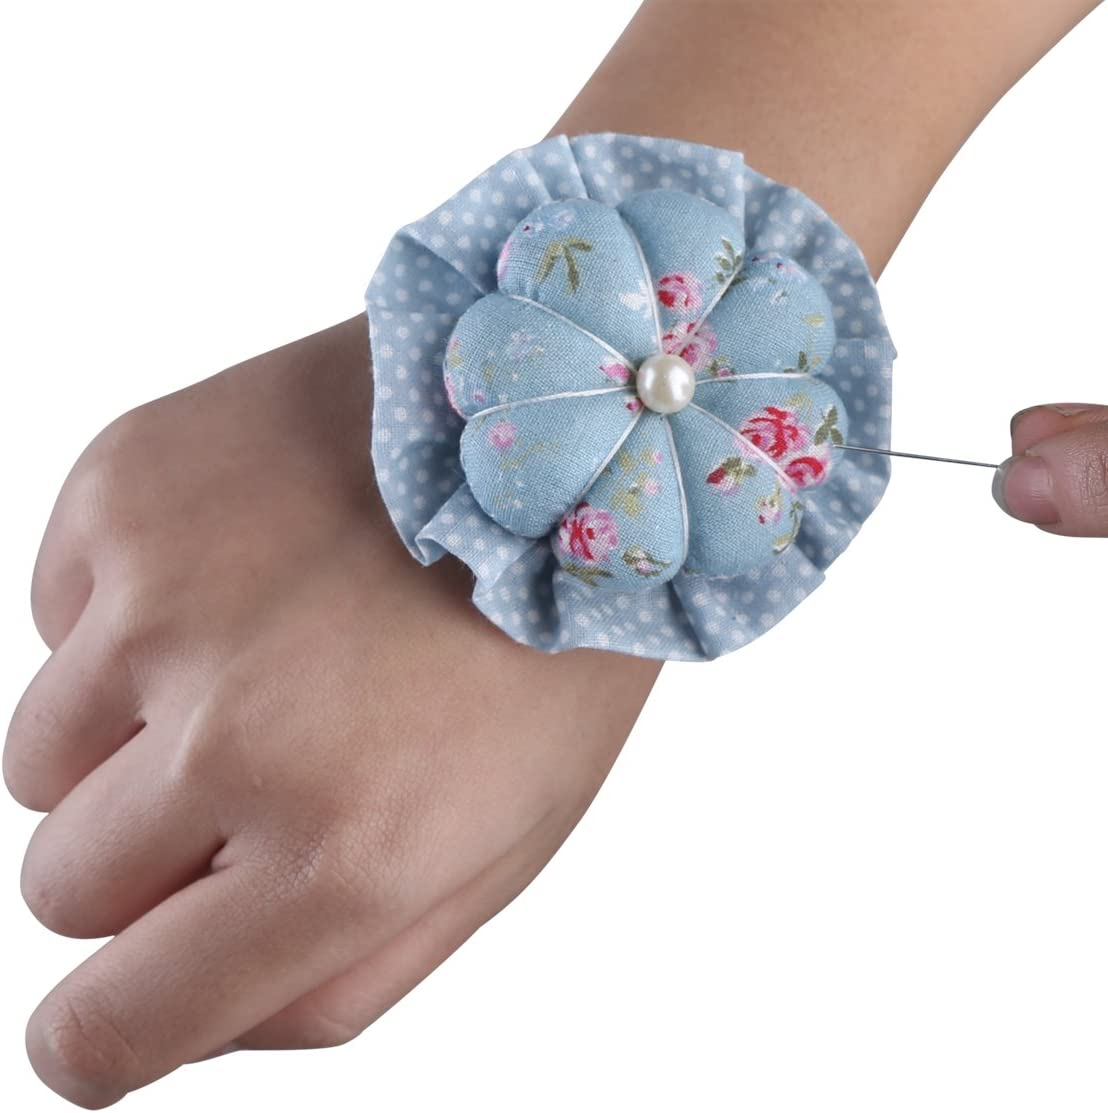 NEOVIVA Flower Shaped Small Pincushions for Sewing with Wrist Band Pack of 2 Floral Fuchsia Roses Style Blossom